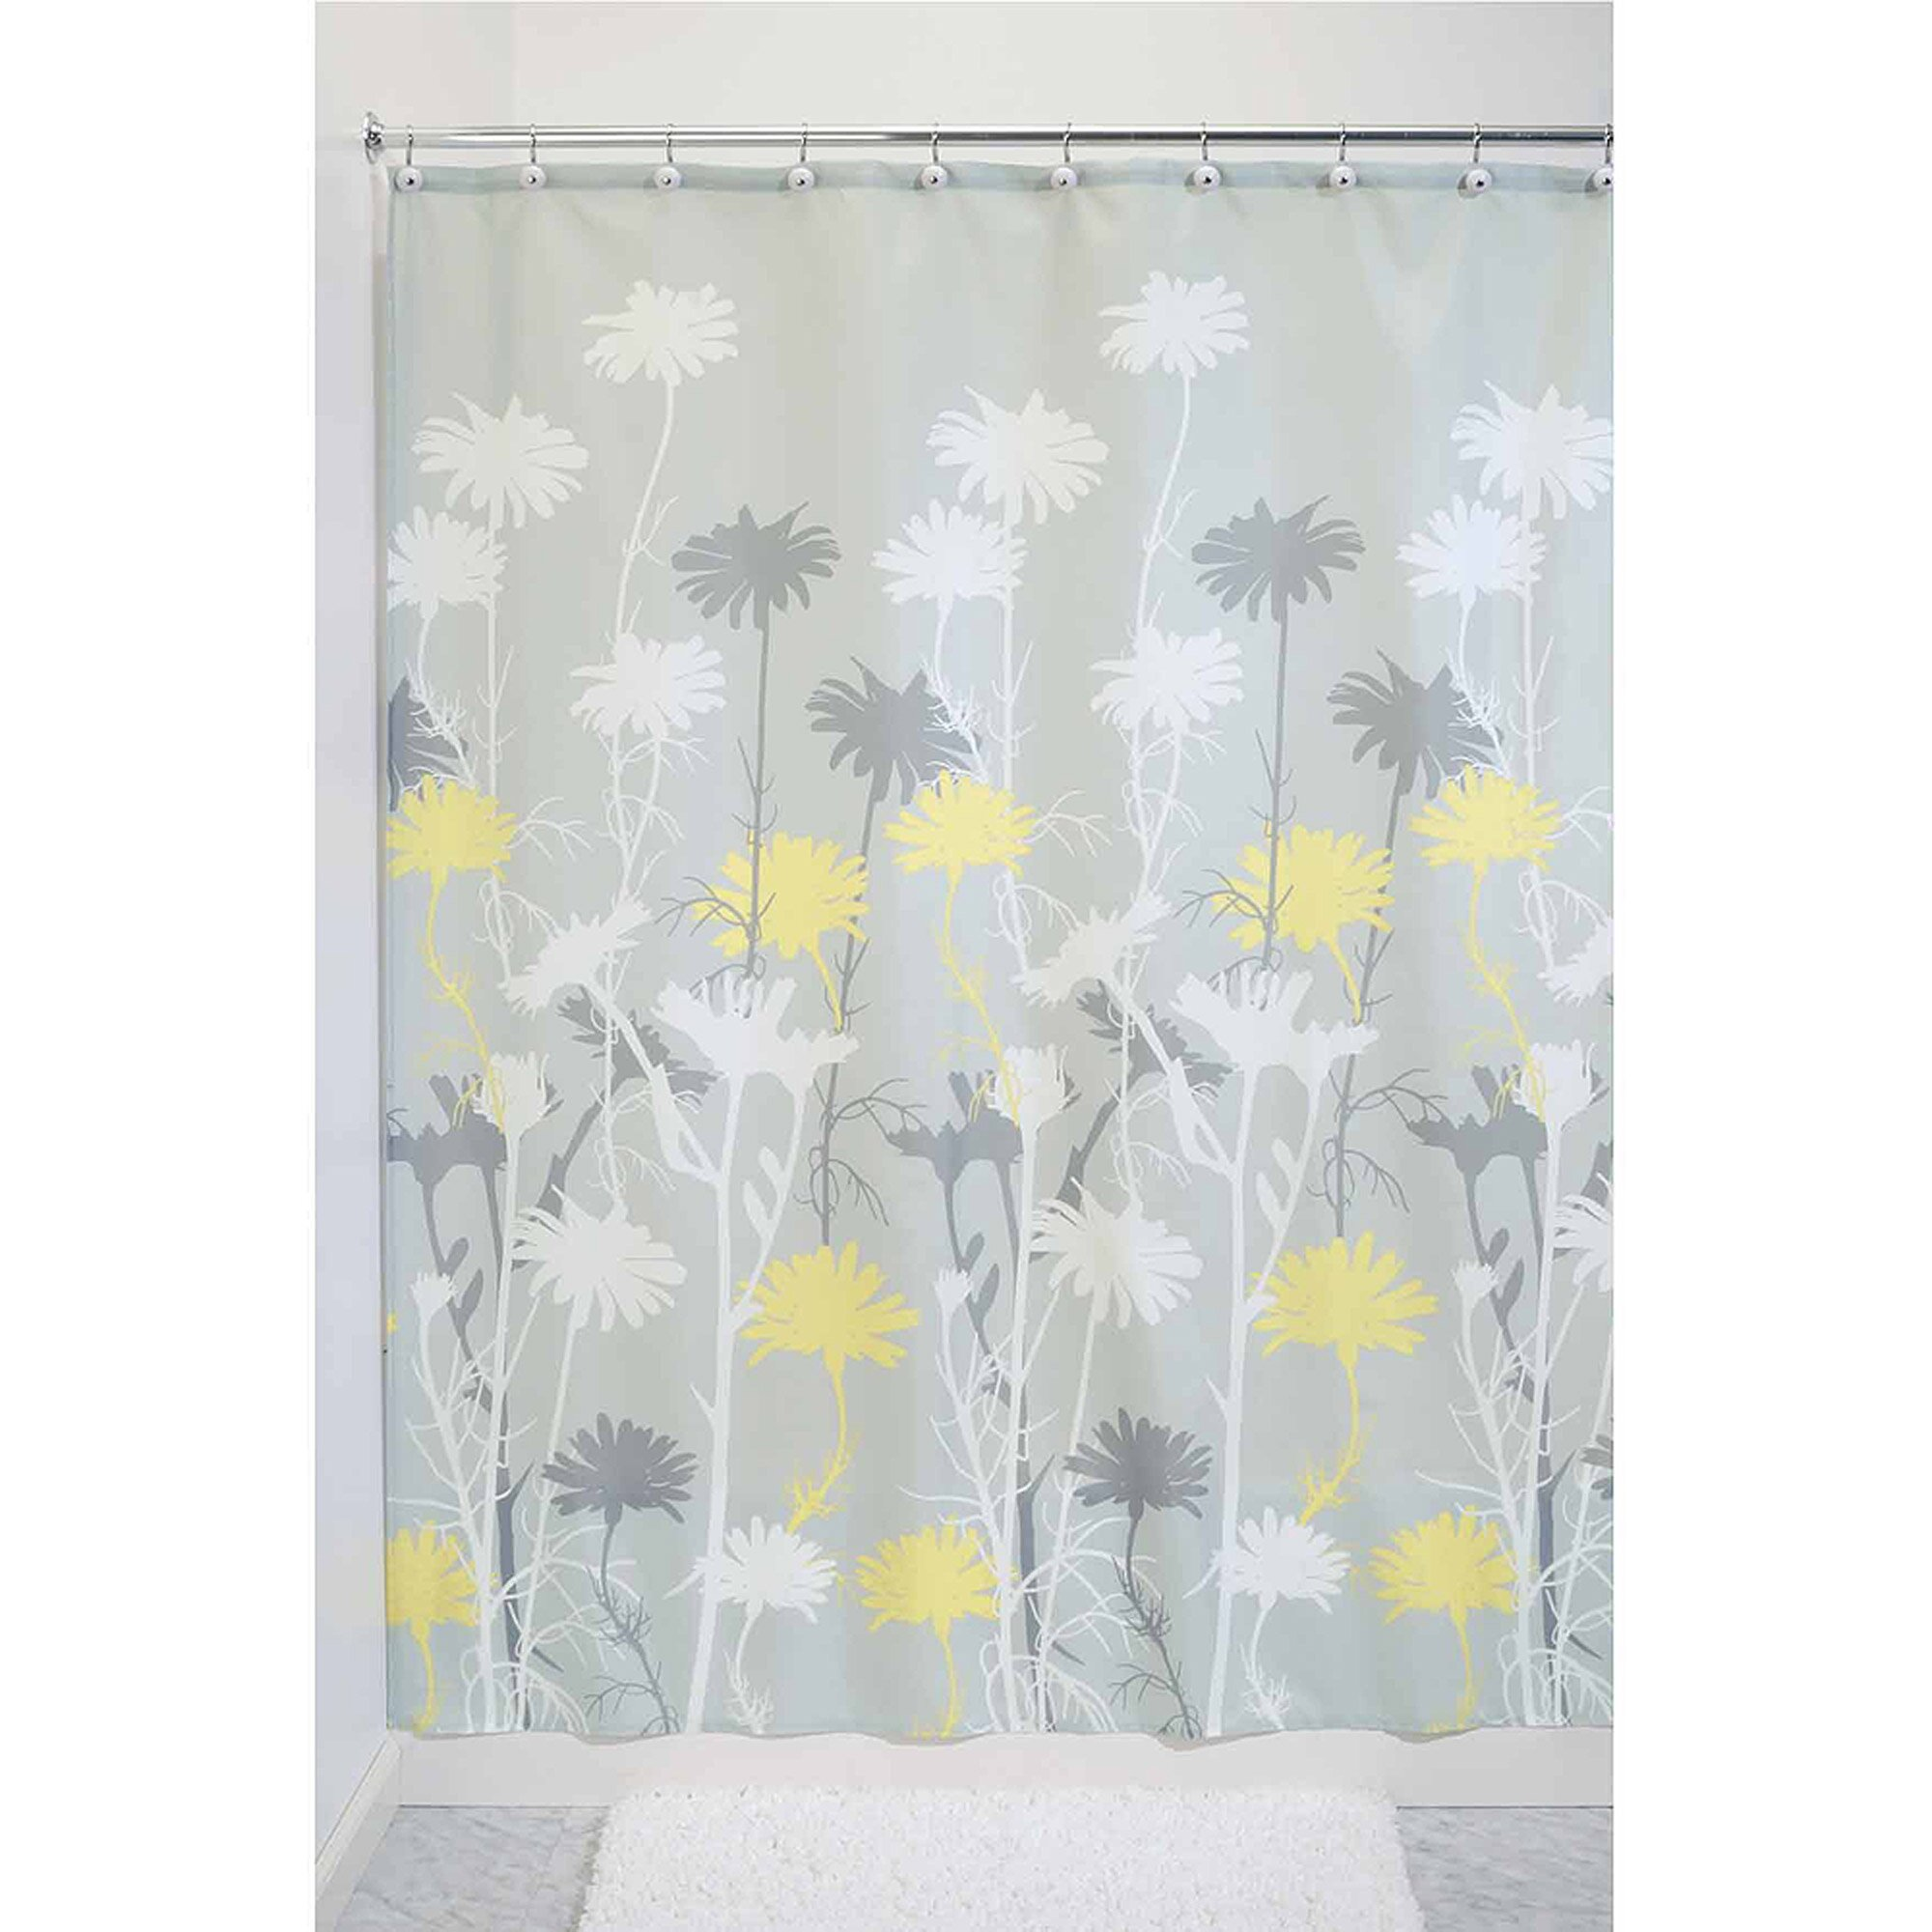 Walmart Shower Curtain for Cute Your Bathroom Decor Ideas: Walmart Fabric Shower Curtains | Hookless Shower Curtain Walmart | Walmart Shower Curtain